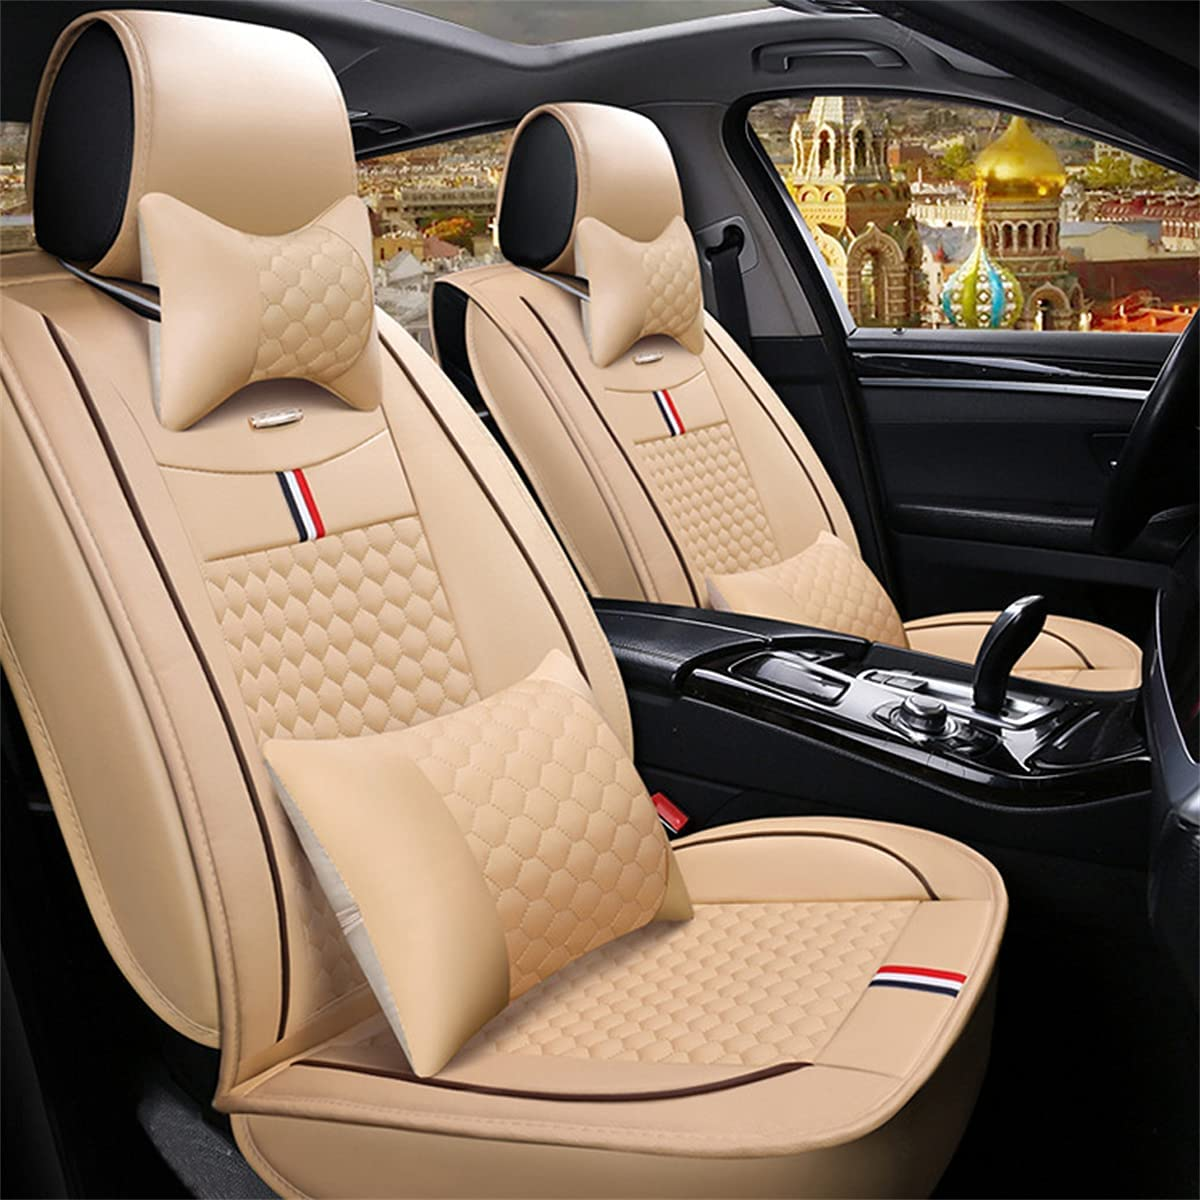 Special Campaign Car Seat Covers fit for Ford 2 Front Seats High order Victoria Crown C